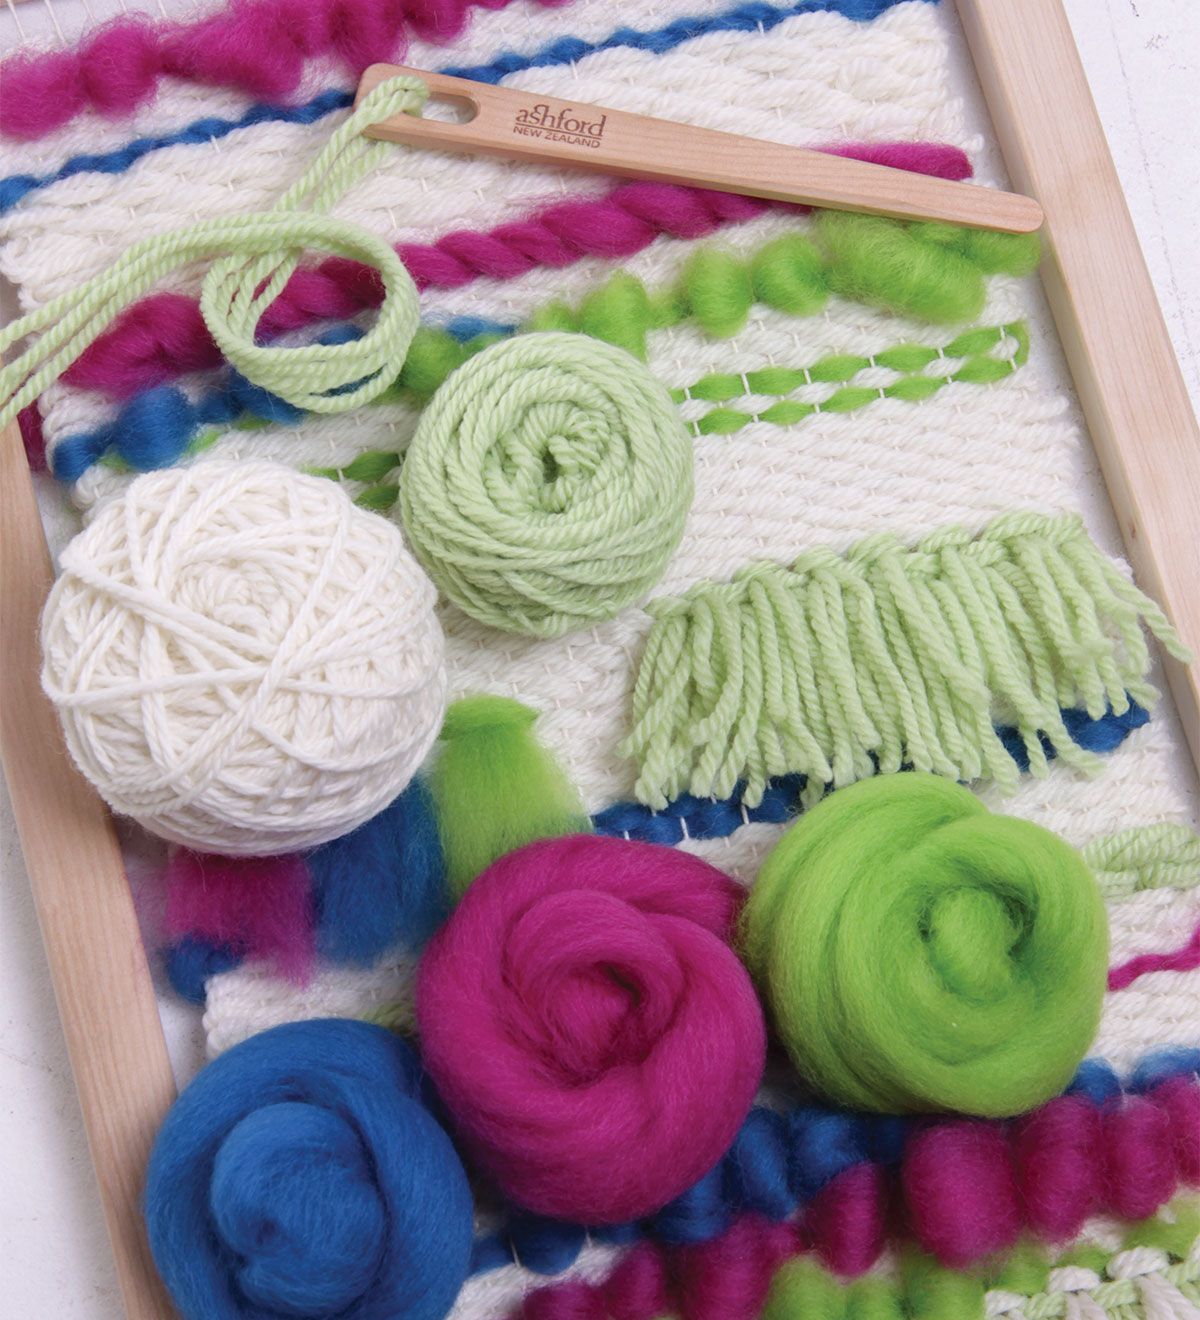 7b32a293f0 Start your creative weaving journey here! Fun and so easy to do. This kit  contains everything ...